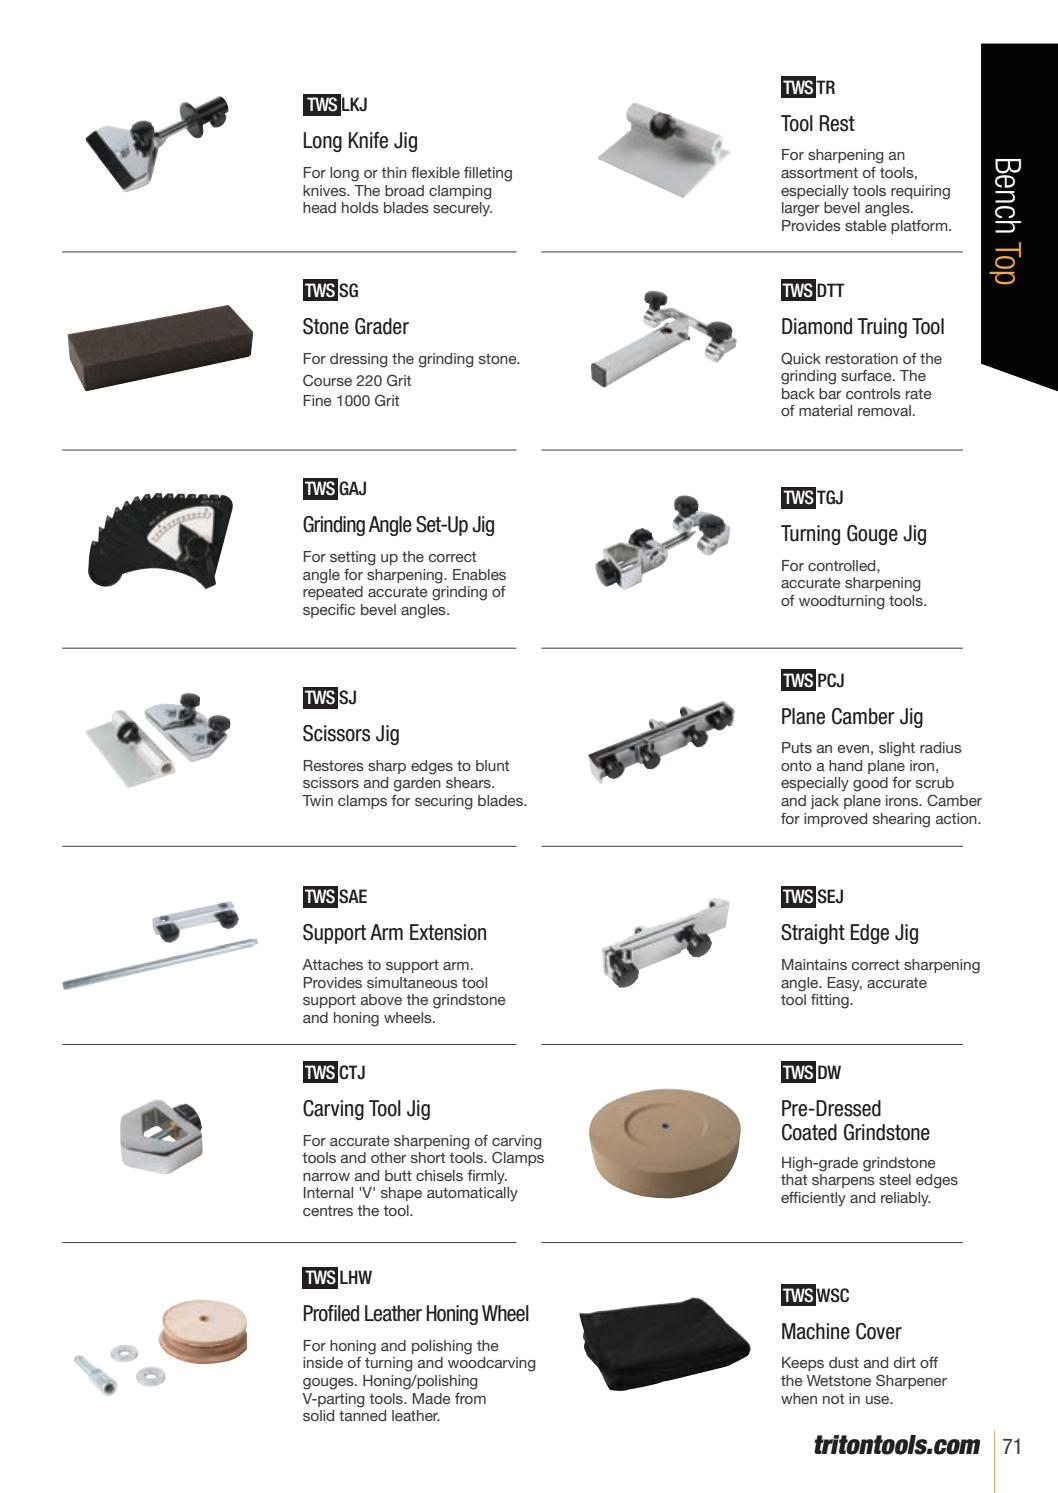 Astounding Triton Tools Catalogue By Triton Tools Issuu Caraccident5 Cool Chair Designs And Ideas Caraccident5Info